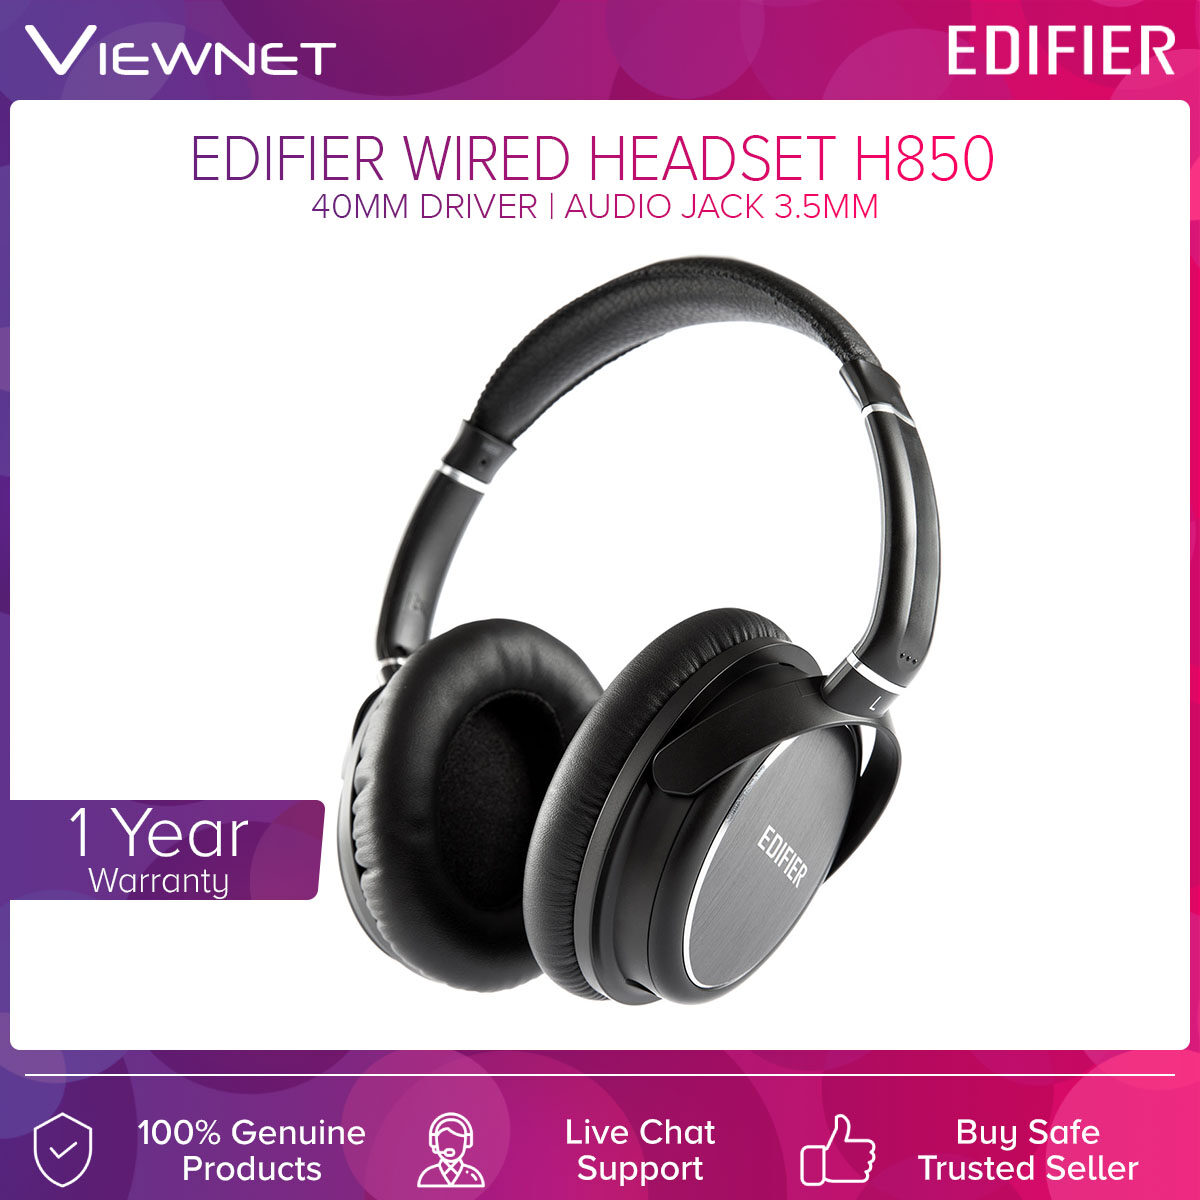 Edifier Wired Headset H850 with 40MM Driver, Comfortable Design, Detachable 3.5MM Audio Jack, Cable Length 2 Meter